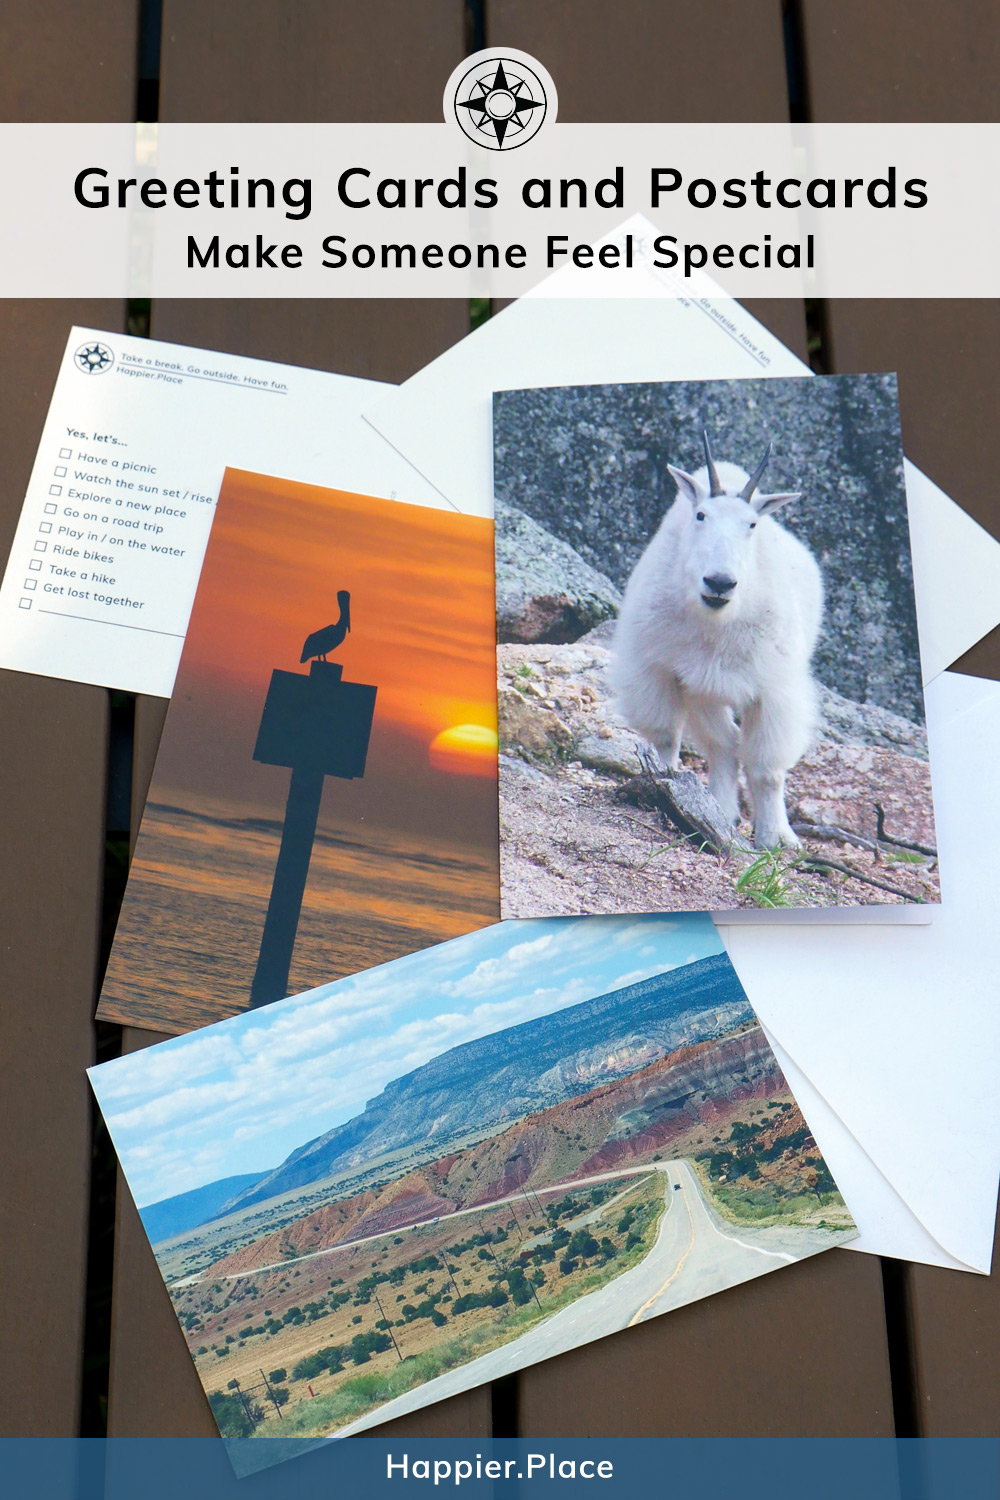 Make someone feel special with Happier Place Cards and Postcards. Original outdoor and nature photography. #HappierPlace #inspiration #photography #naturephotography